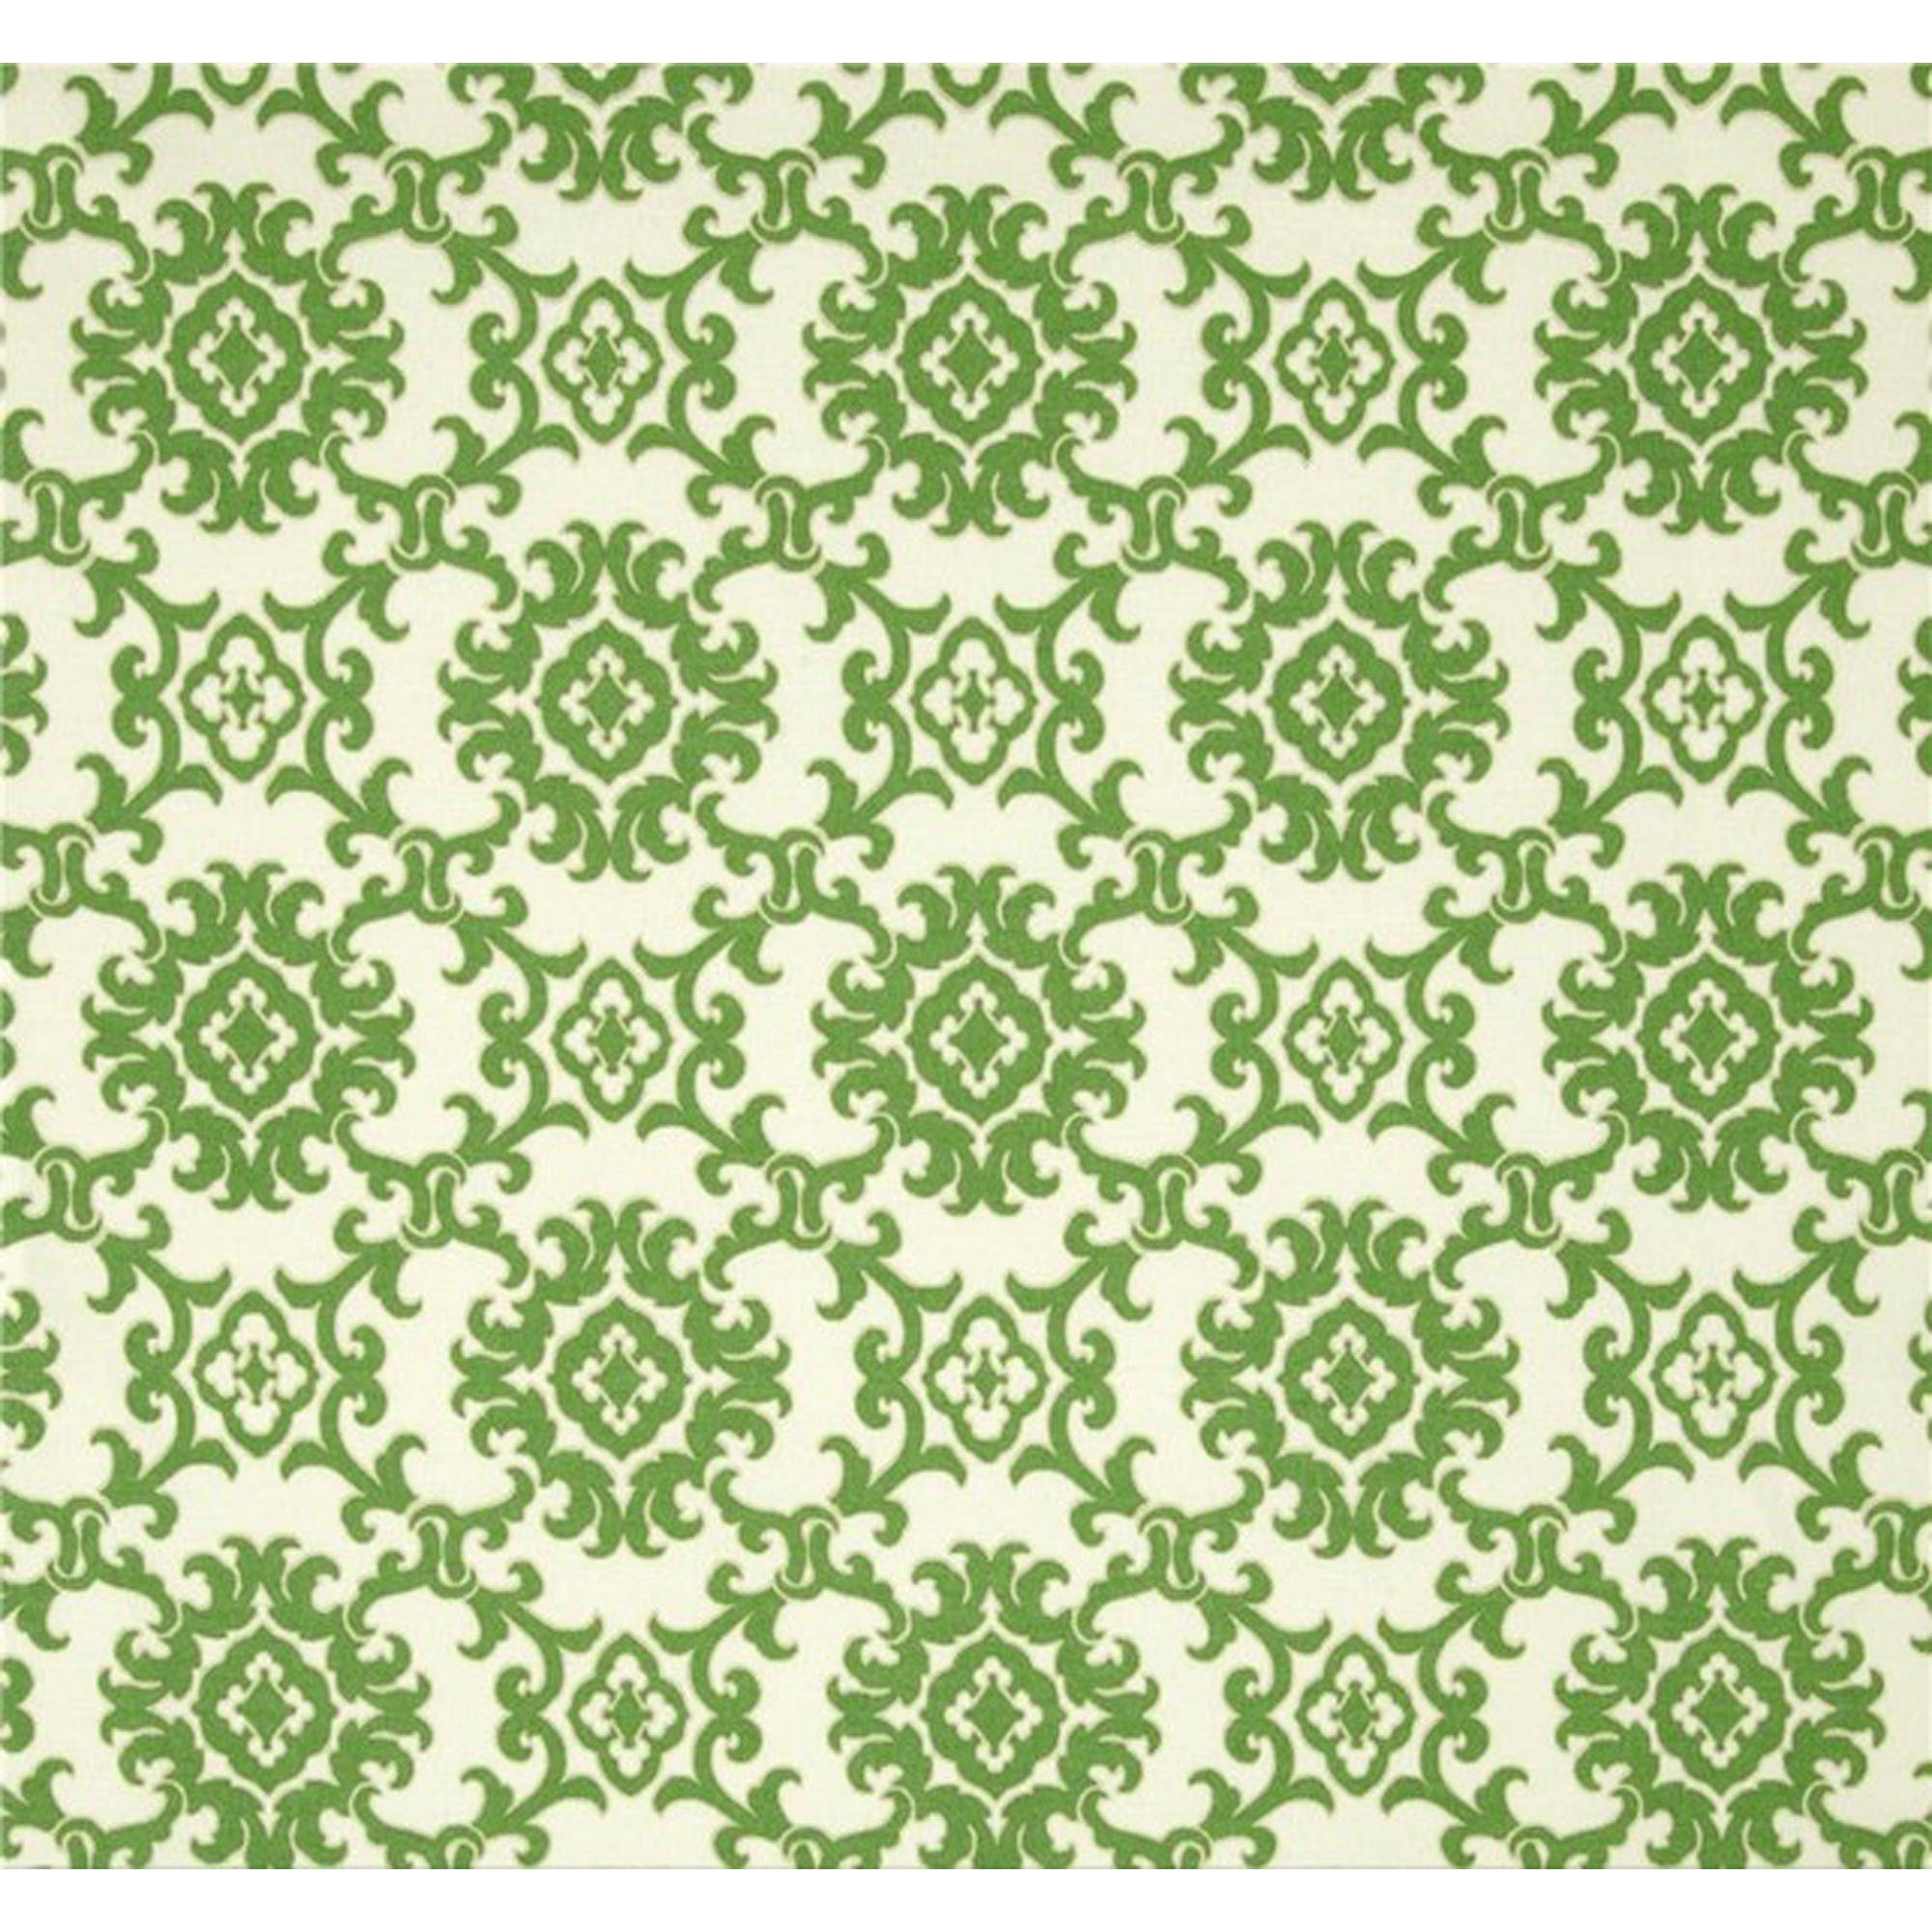 Jordan Manufacturing Outdoor Fabric by the Yard, Medallion Jungle